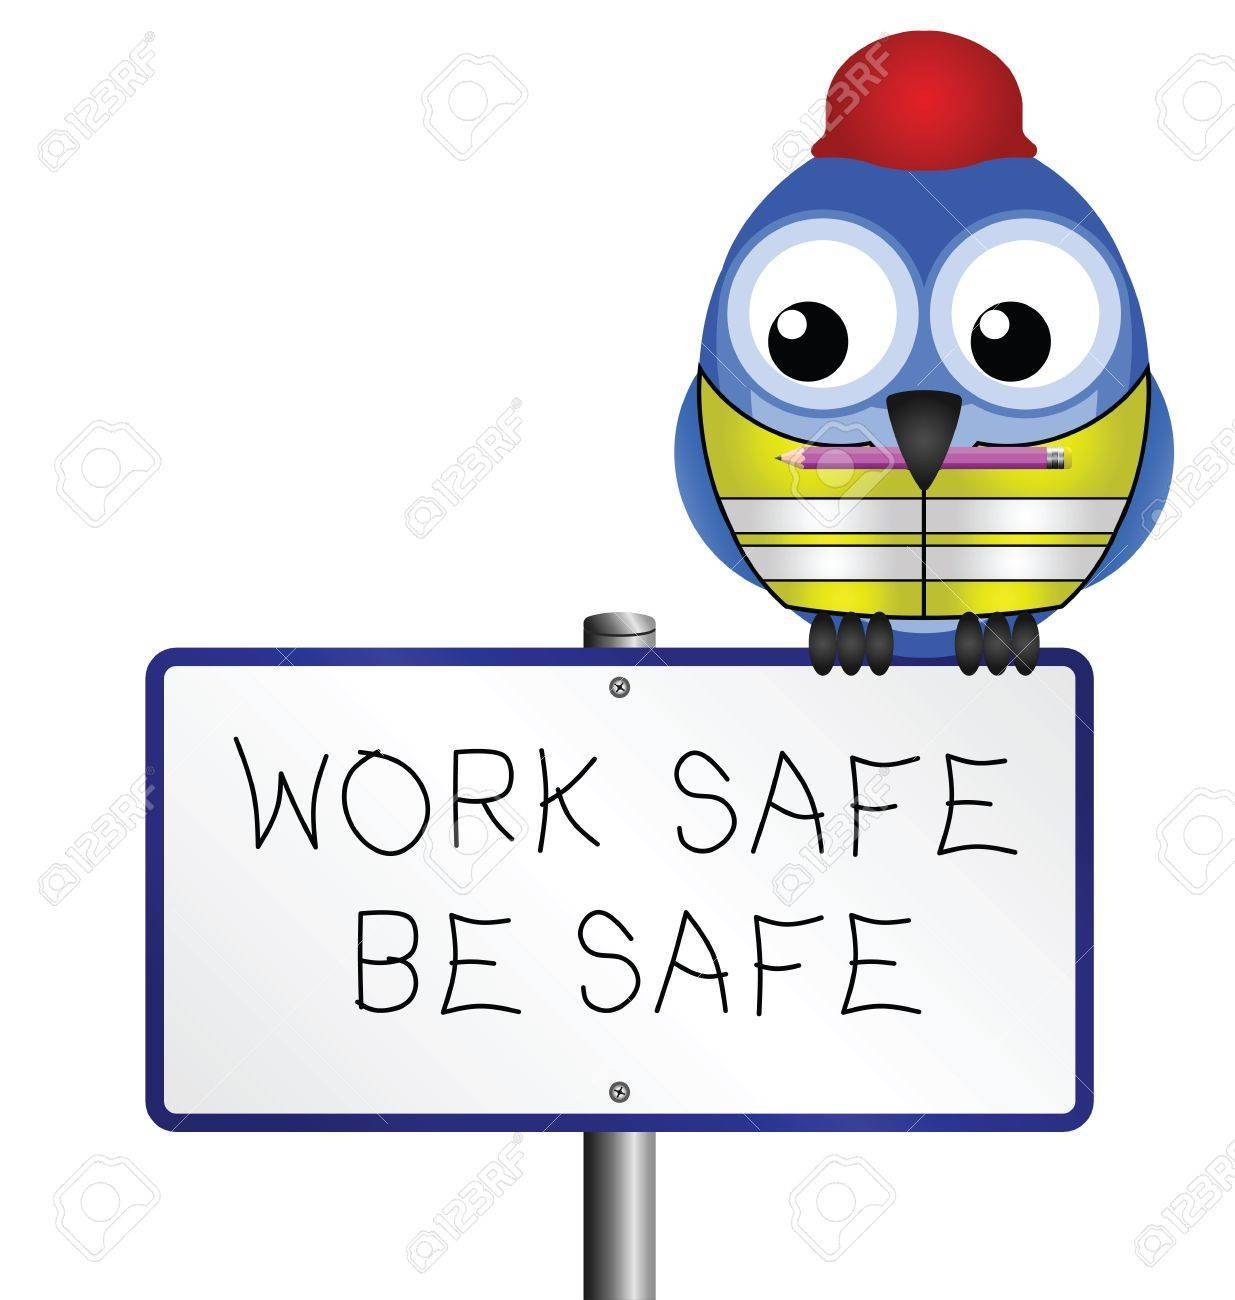 Free clipart health and safety 8 » Clipart Portal.